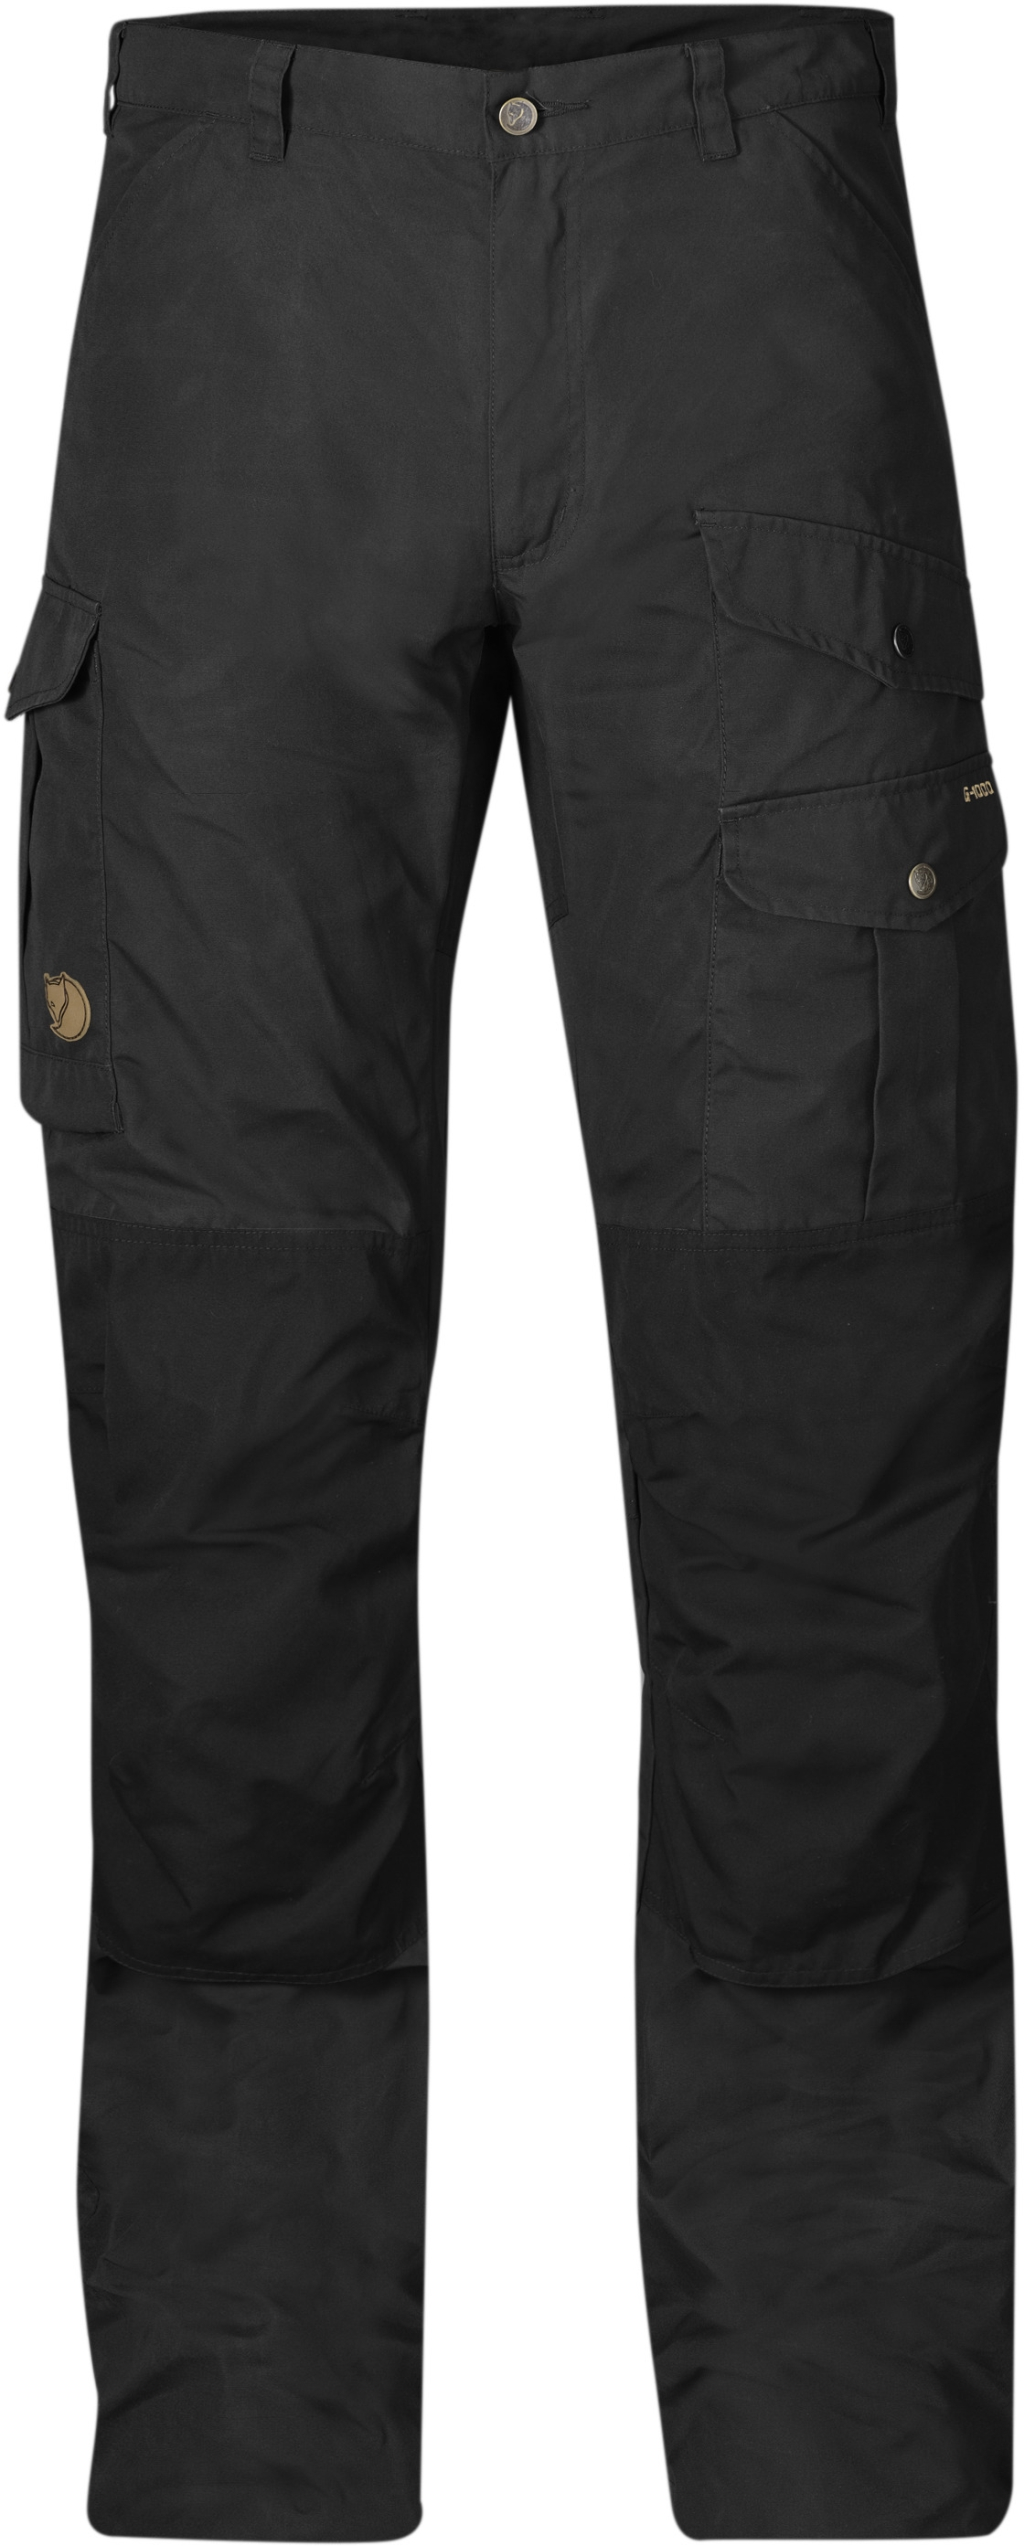 FjallRaven Barents Pro Dark Grey-30